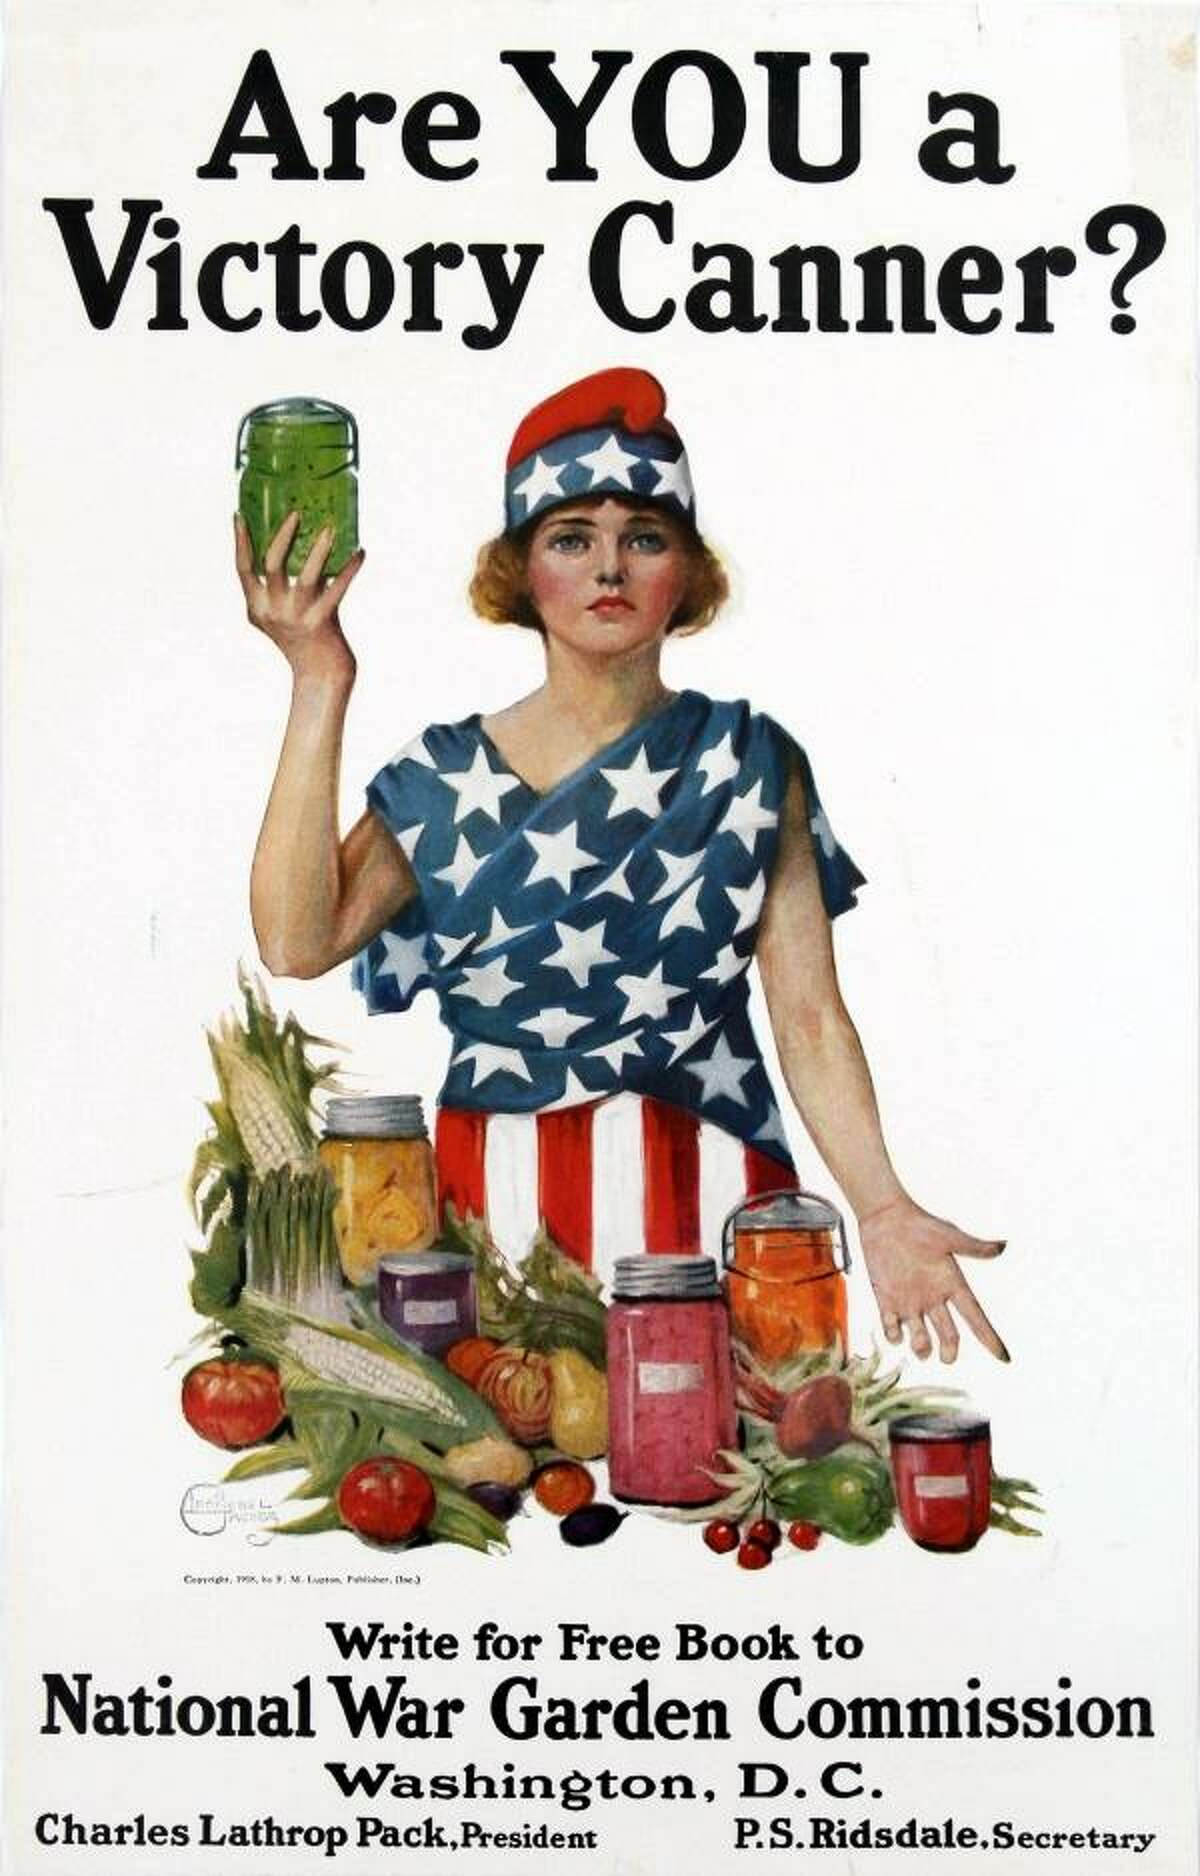 Victory Canner (1918, USA) Illustrated by Leonebel Jacobs, a noted painter, this highly patriotic WWI poster encourages people to can food. Notice how the call to action is to write off for a guide book on canning.